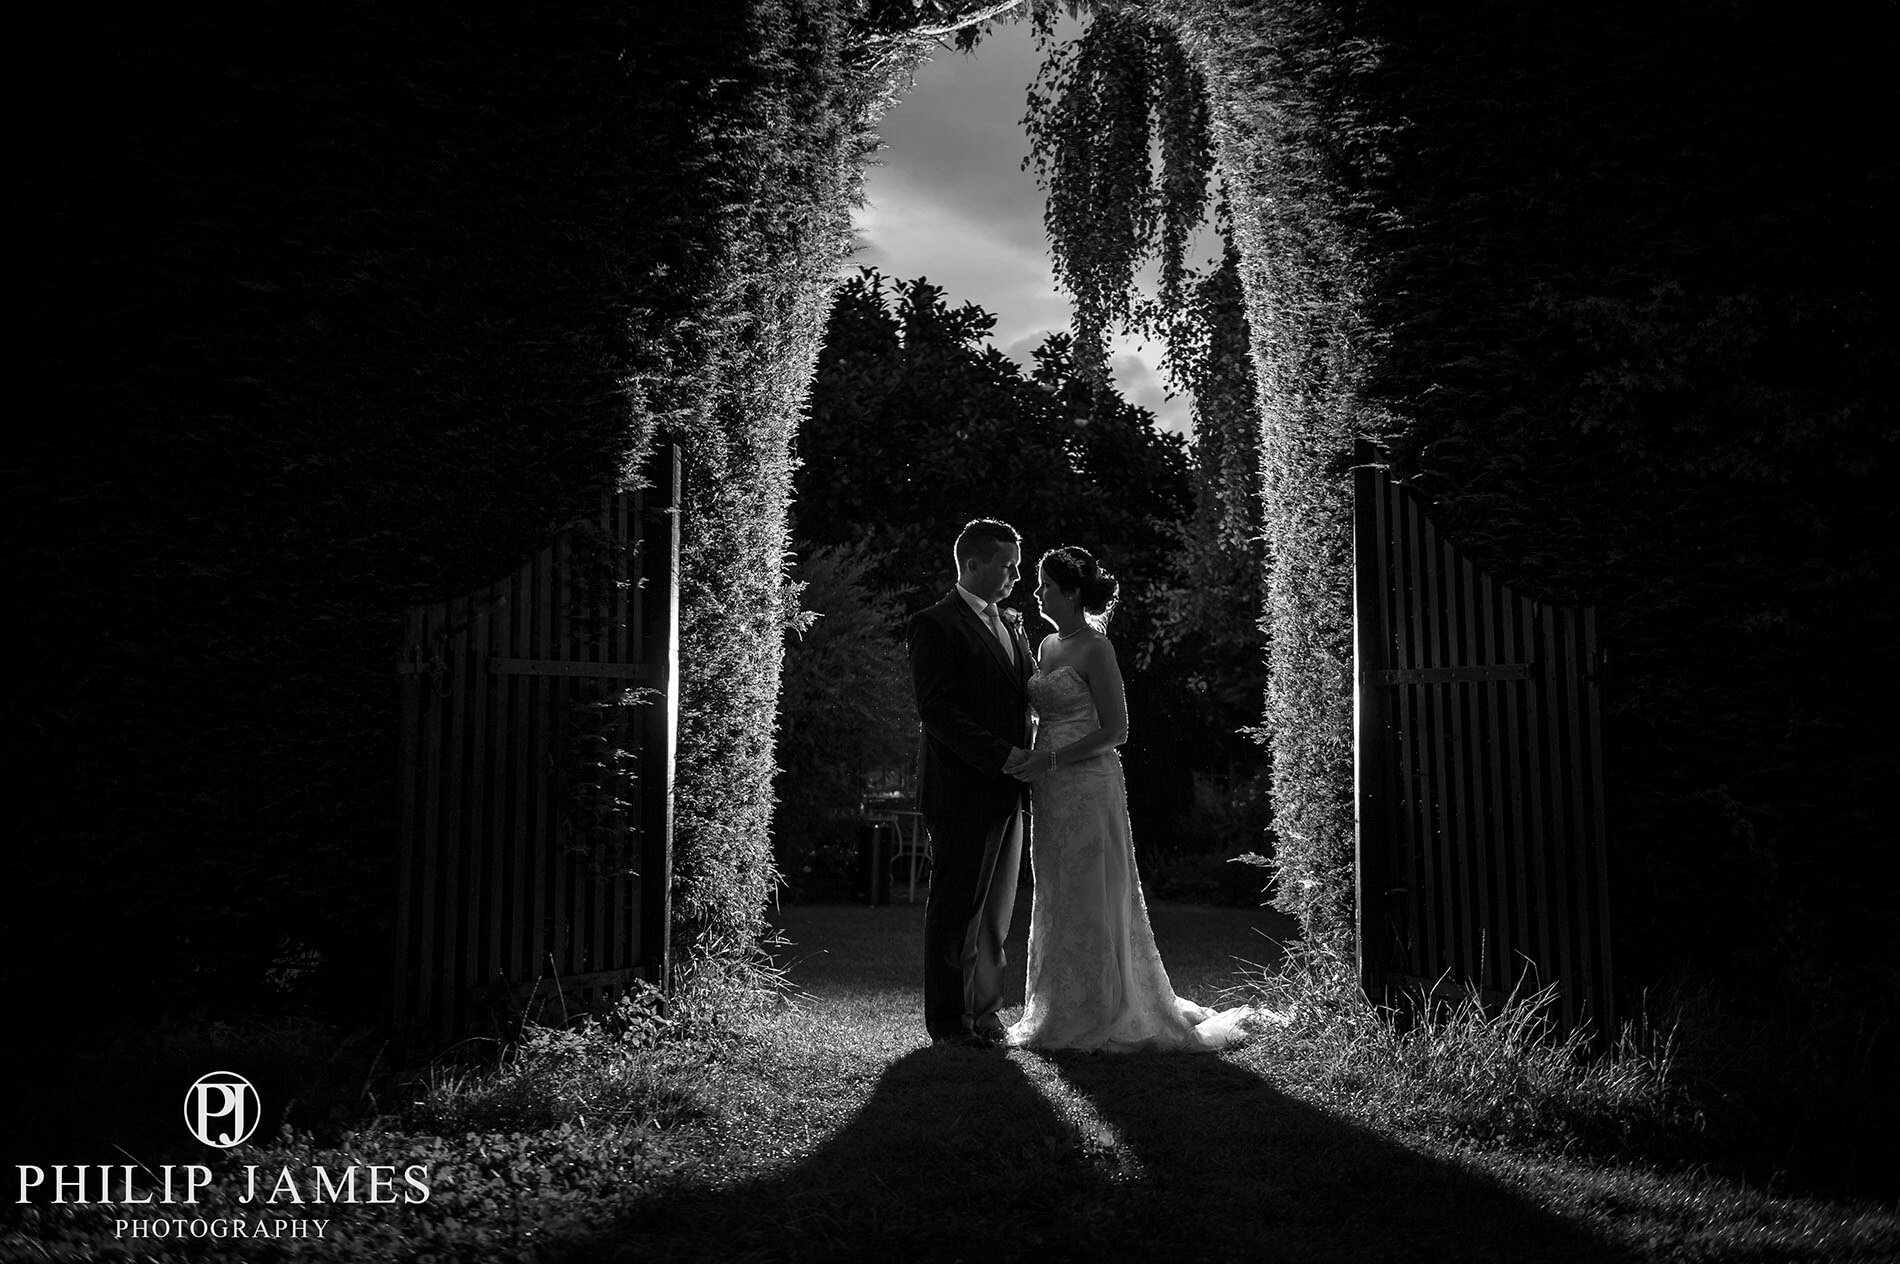 Birmingham Wedding Photographer - Philip James Photography based in Solihull (62 of 68)